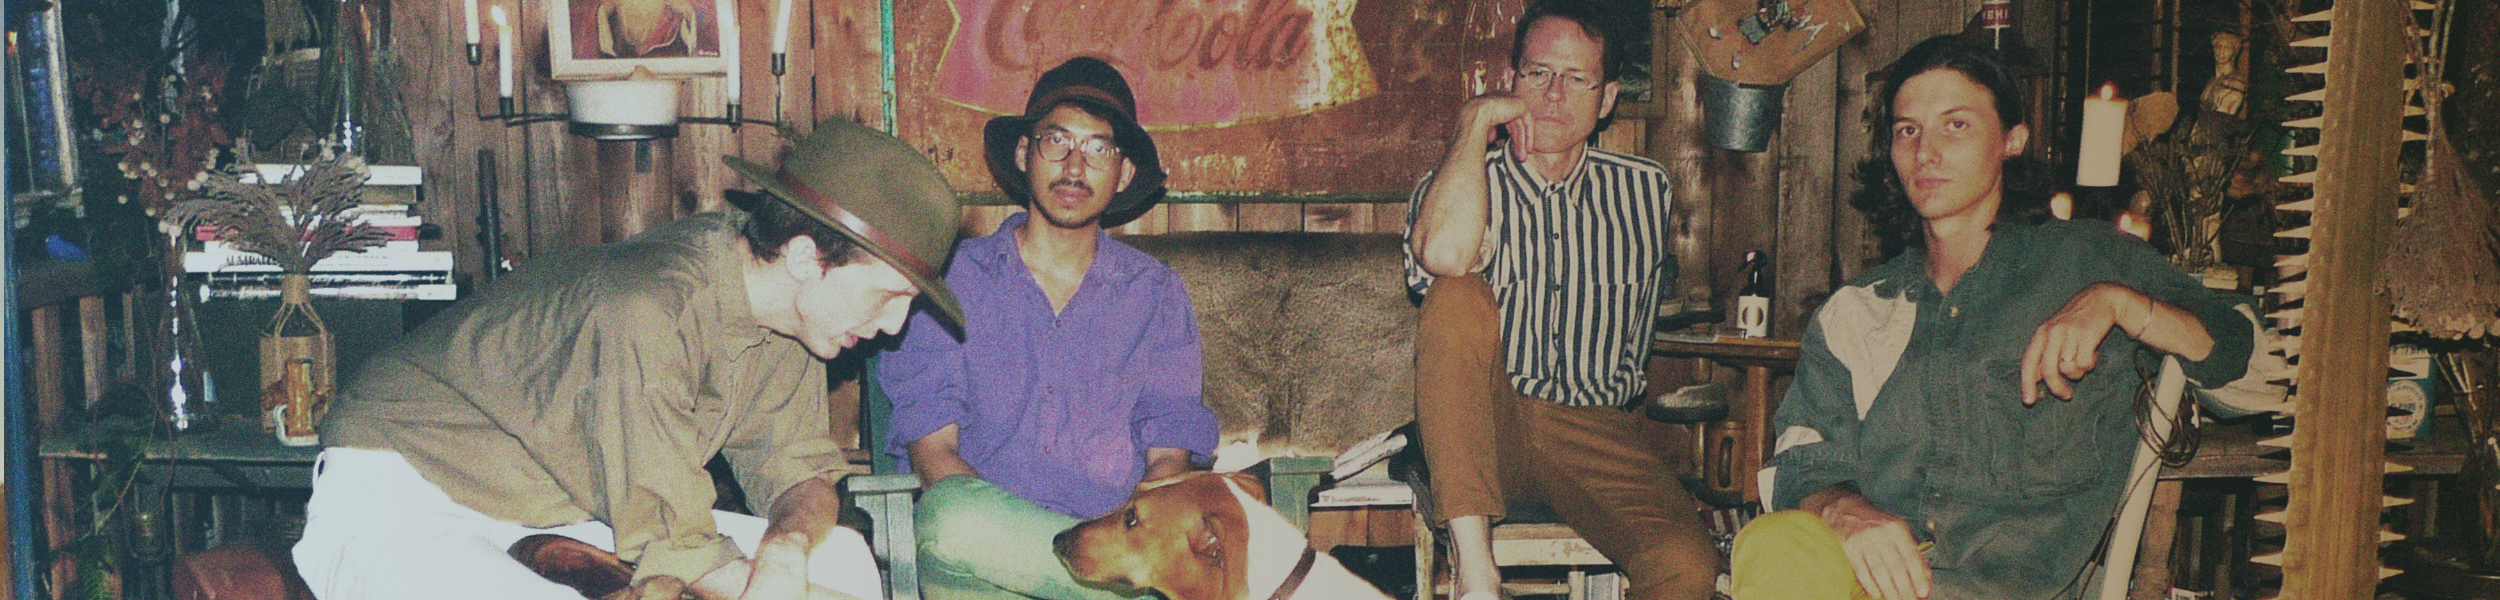 Deerhunter - Deerhunter Announce Details of New Single